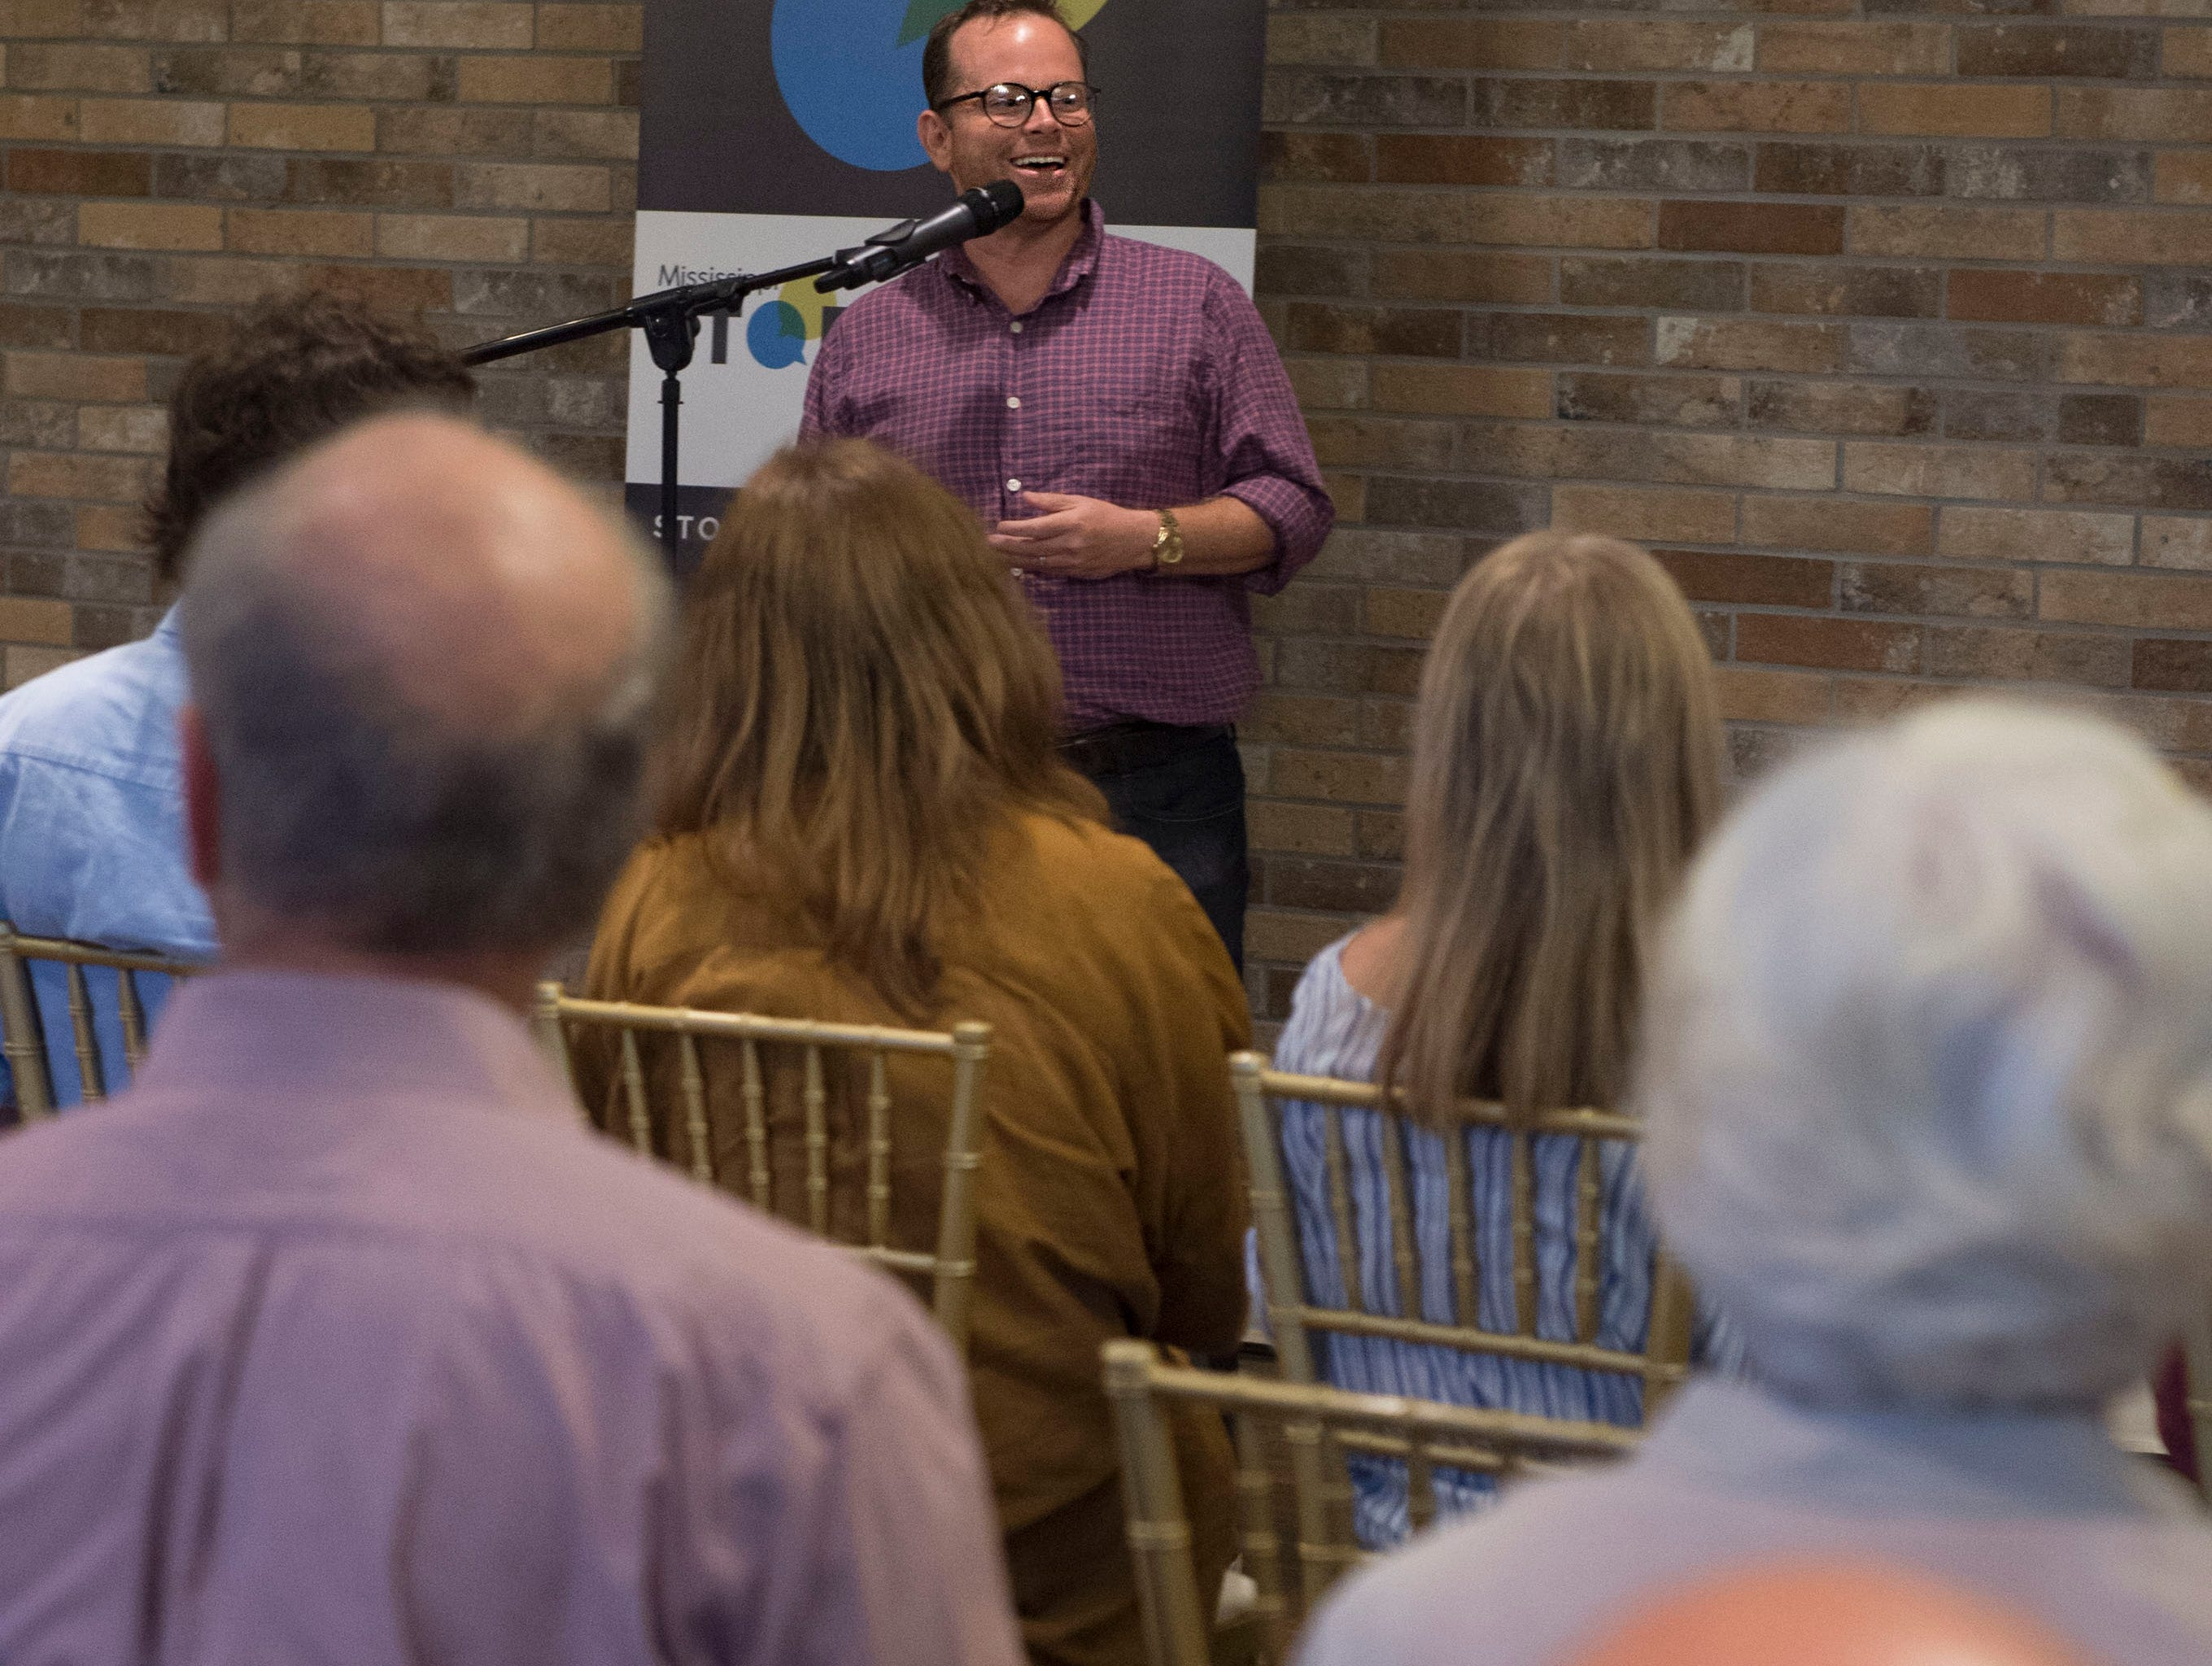 John C. Cox tells about his dad, a Chevron gas card and the lessons they taught, during Mississippi Storytellers: Growing Up, hosted by Rickhouse in Jackson. Tuesday, Sept. 18, 2018.